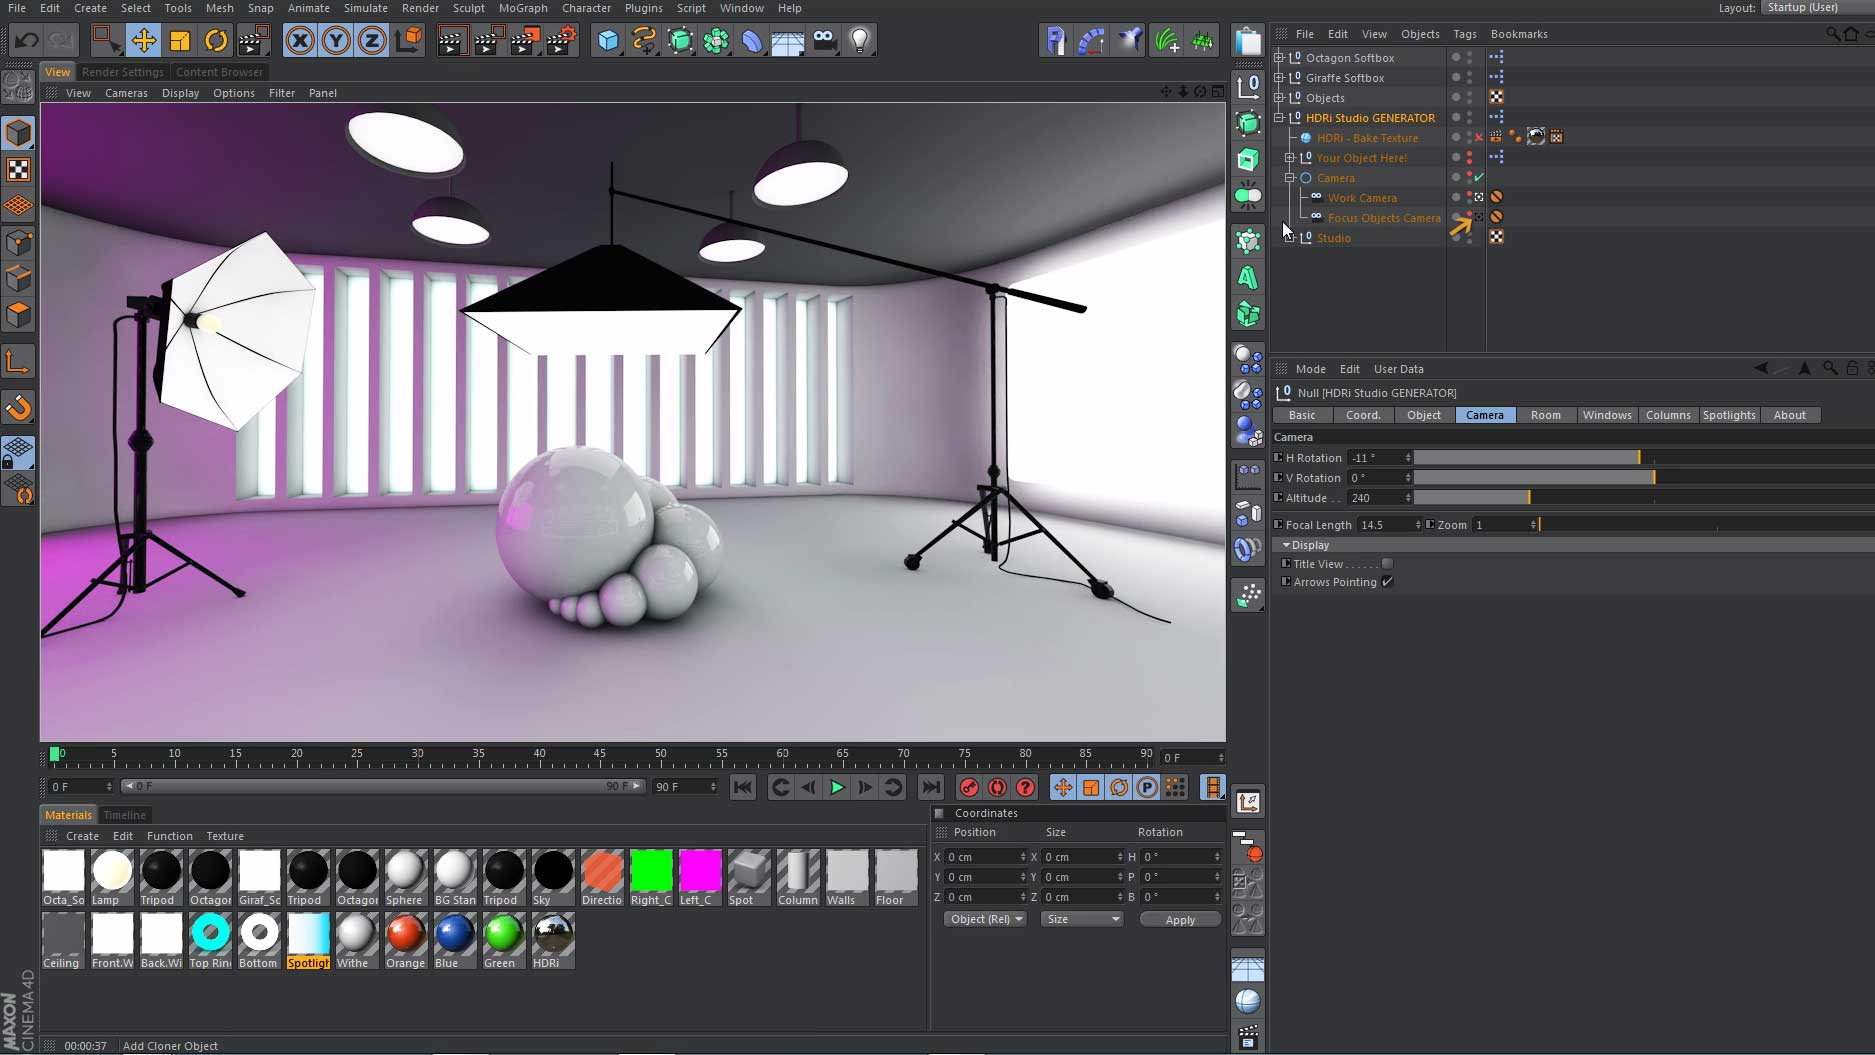 HDRi Studio GENERATOR Tool For Cinema 4D – Mustapha FERSAOUI